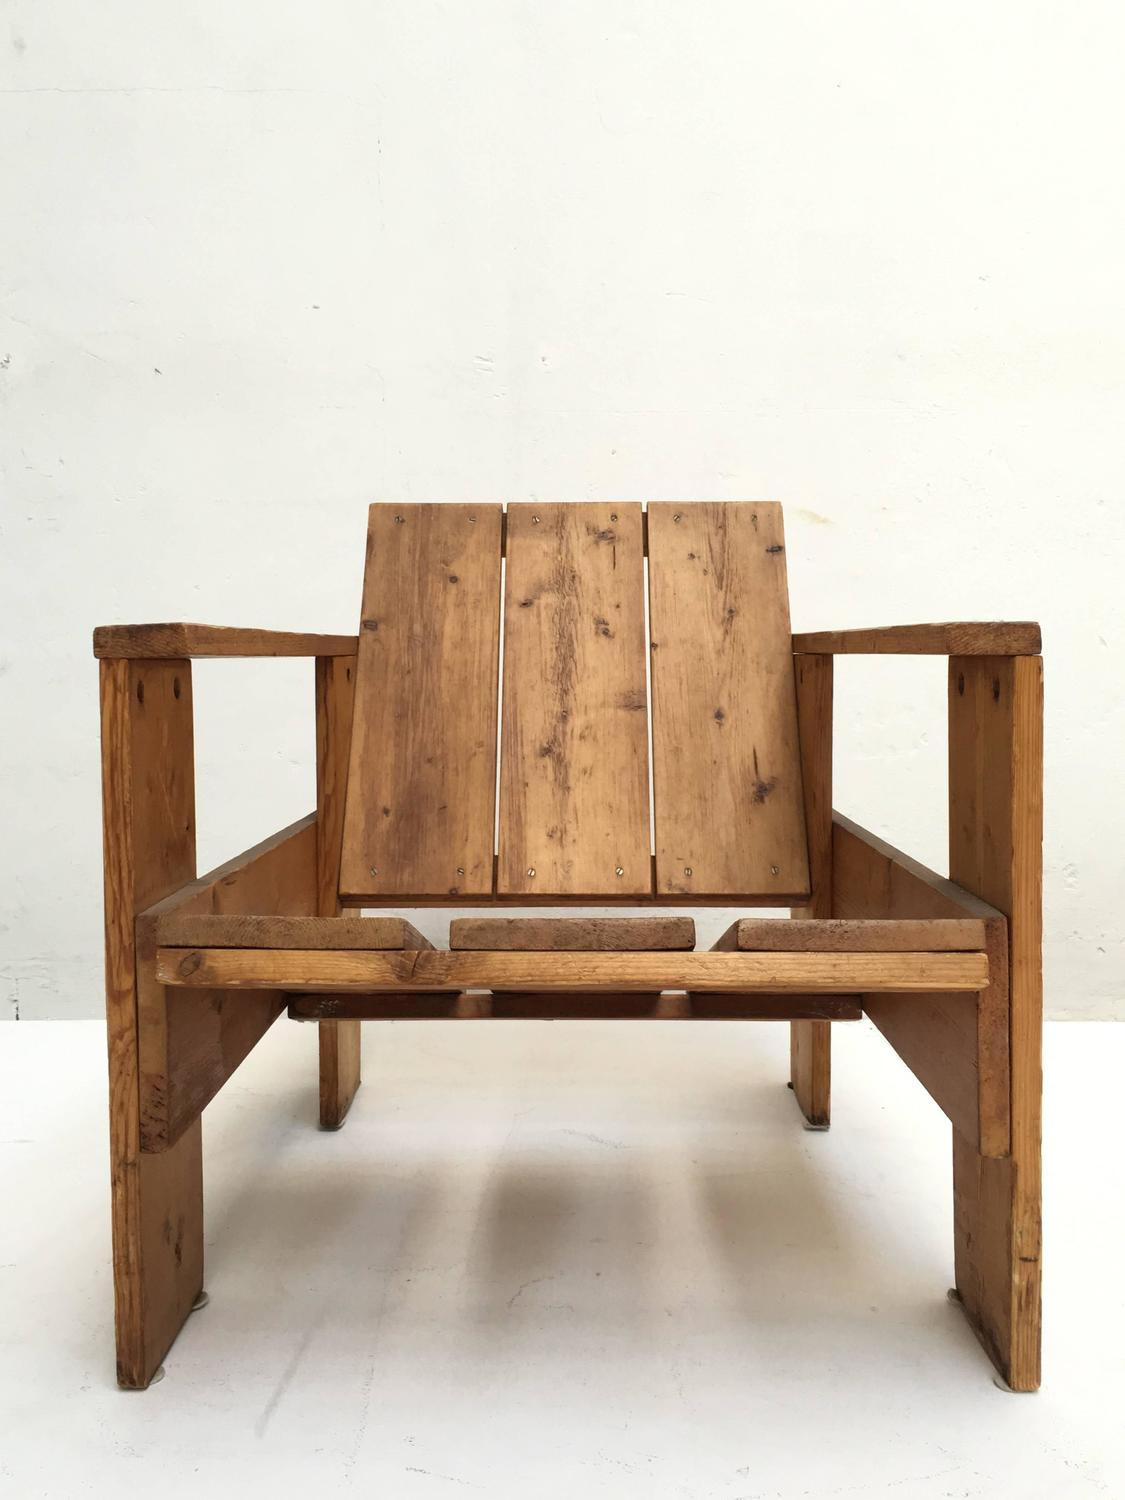 gerrit rietveld crate chair luxury beach chairs 1950s by unknown manufacturer